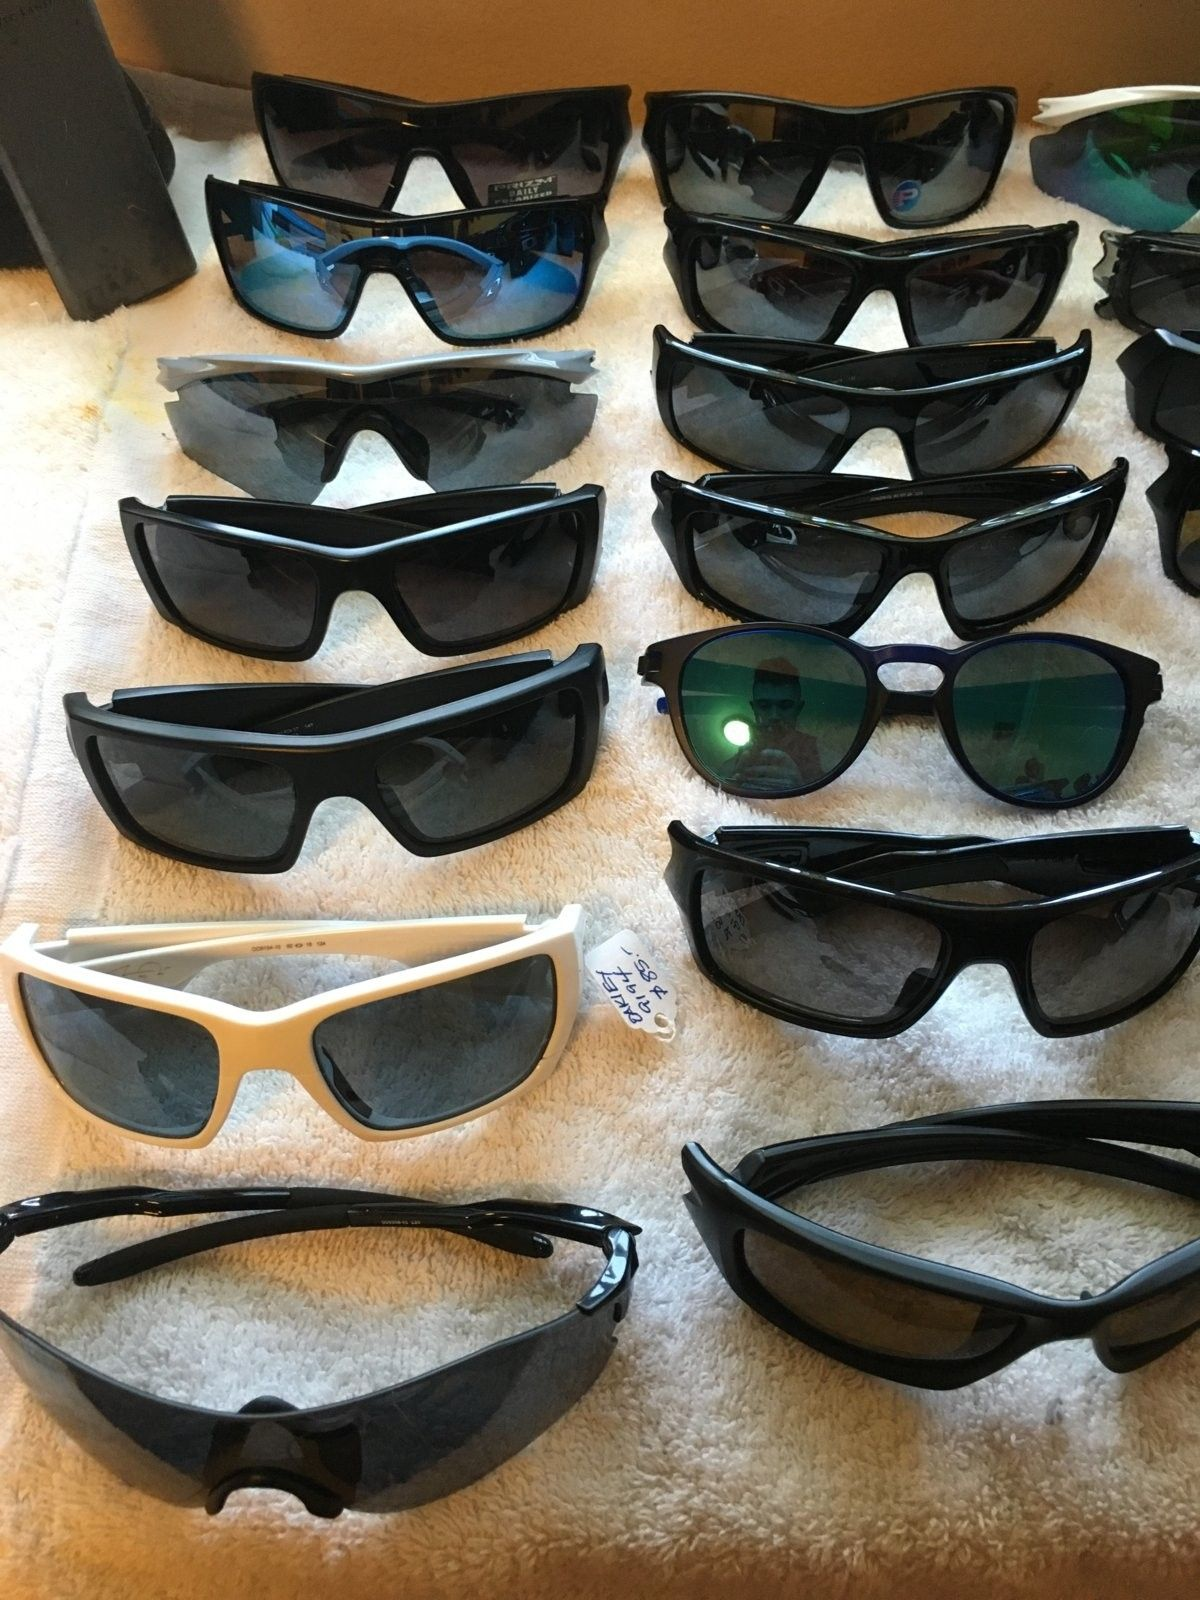 LOTS OF OAKLEYS, GREAT PRICES! - IMG_1727.JPG